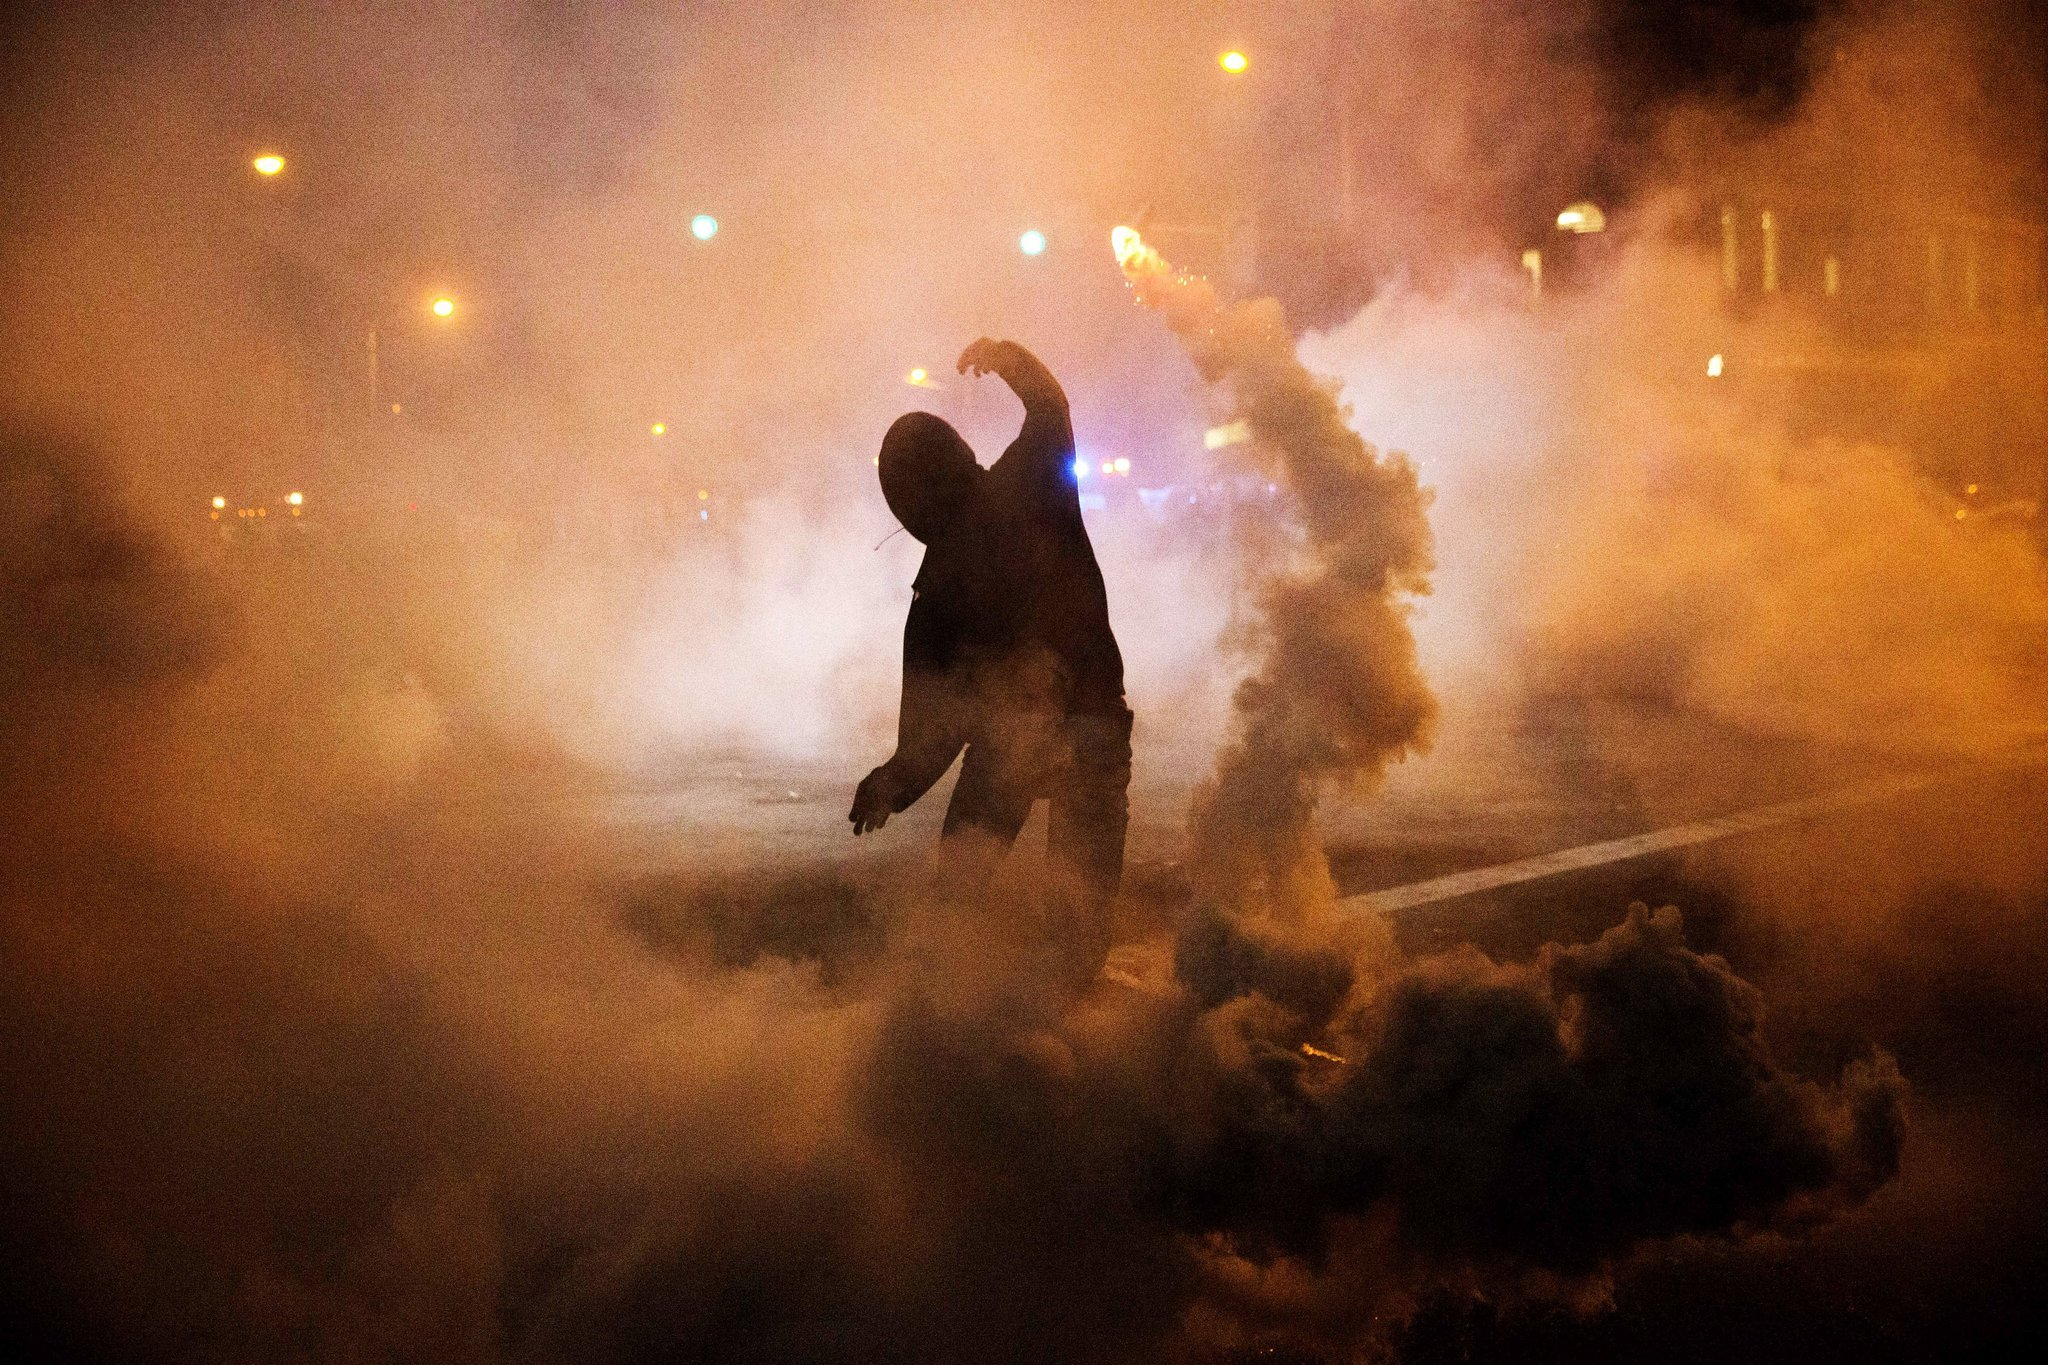 Police use smoke grenades, pepper balls during Baltimore protest ...